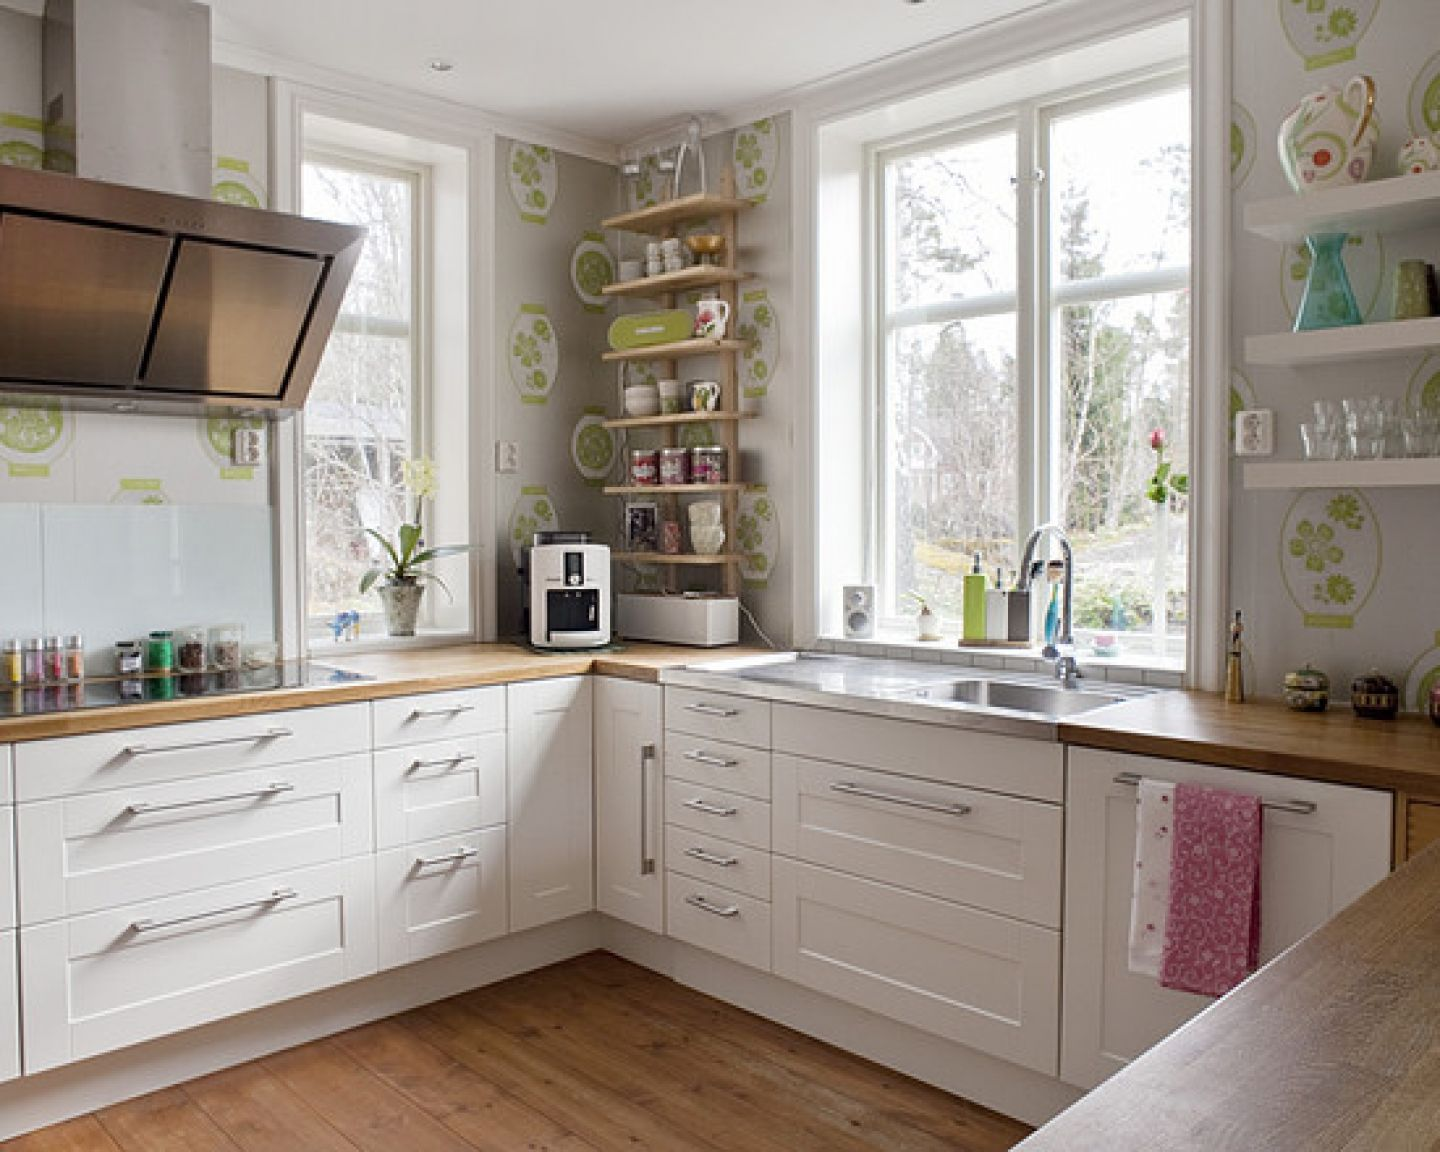 ikea kitchen designs. a country kitchen with grey inset doors